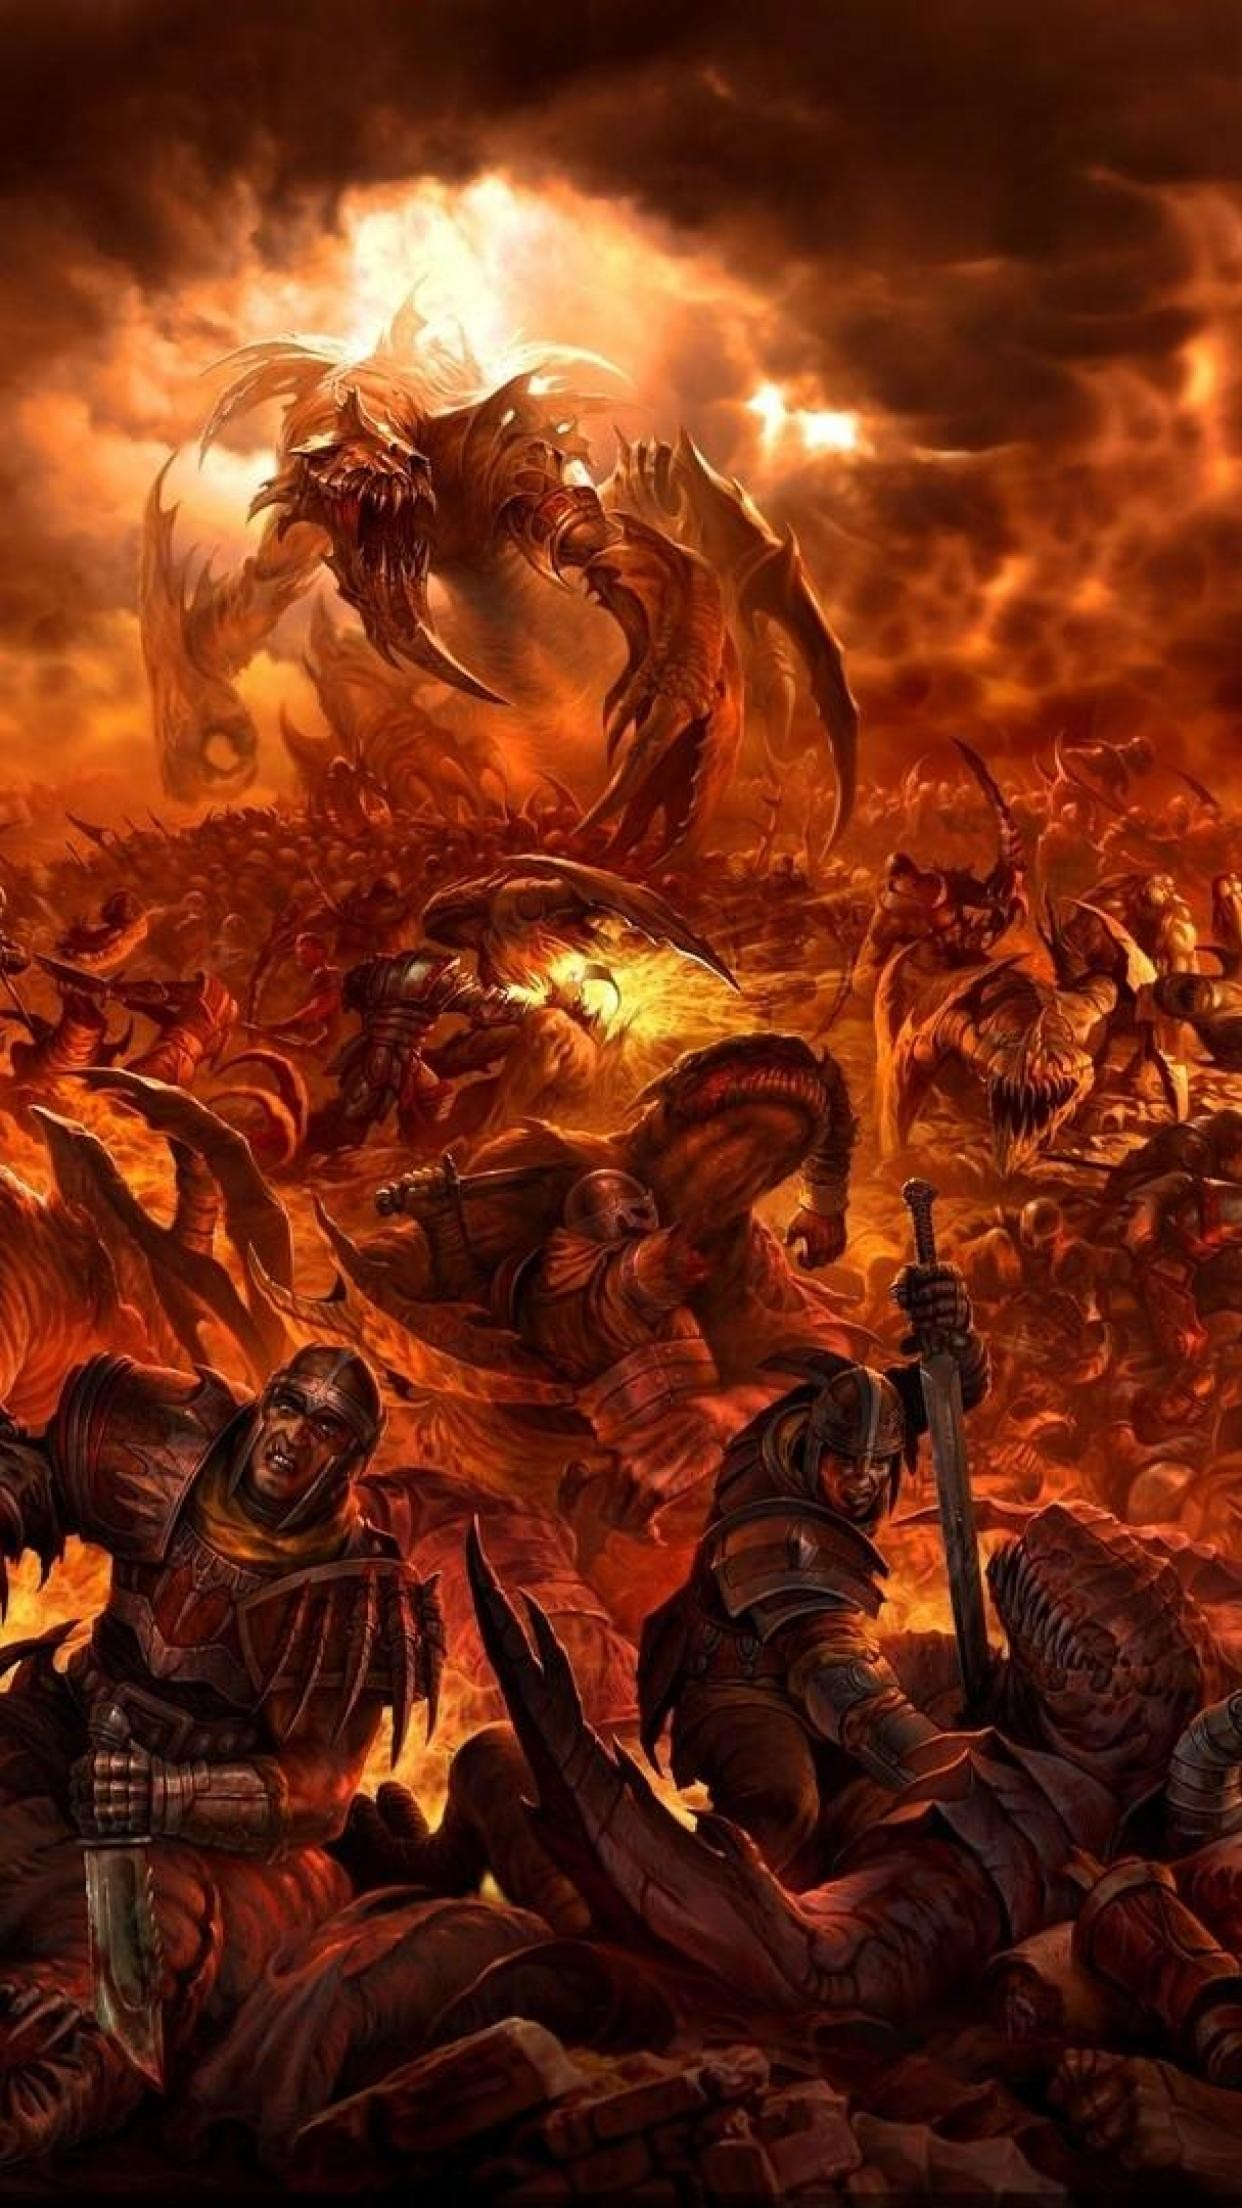 Red Devil Hd Wallpaper Fire Dragon Wallpapers 72 Background Pictures